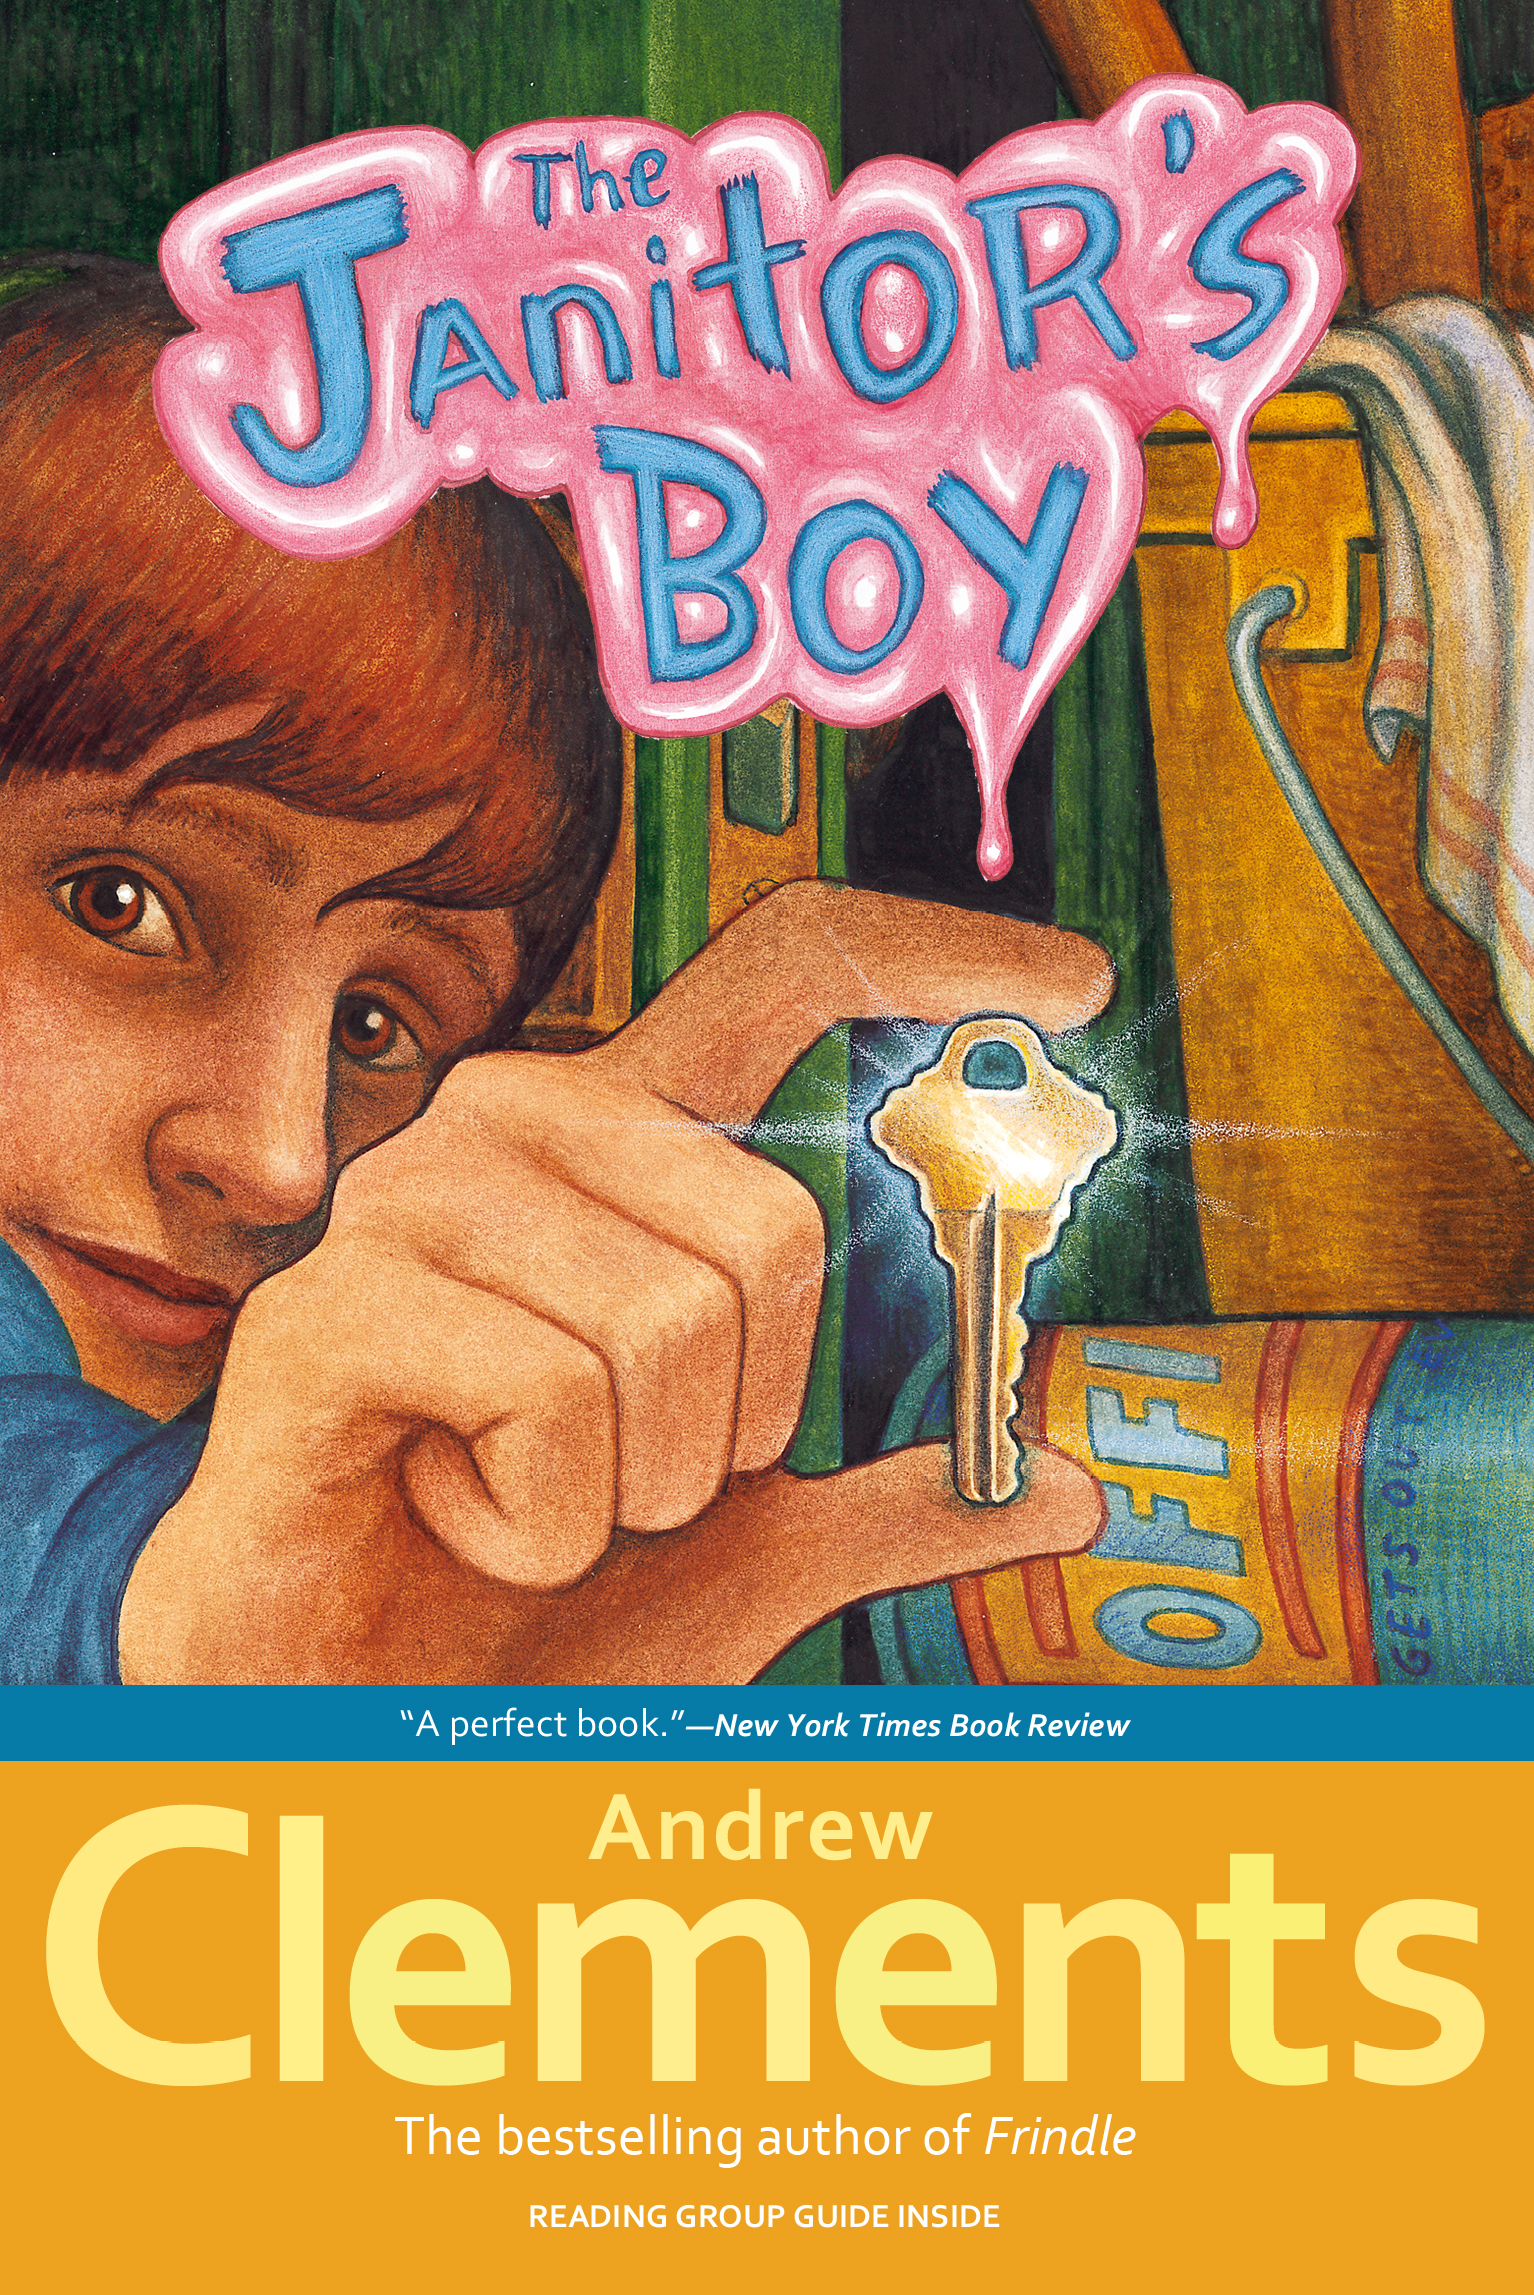 The janitors boy book by andrew clements brian selznick cvr9780689835858 9780689835858 hr the janitors boy publicscrutiny Gallery